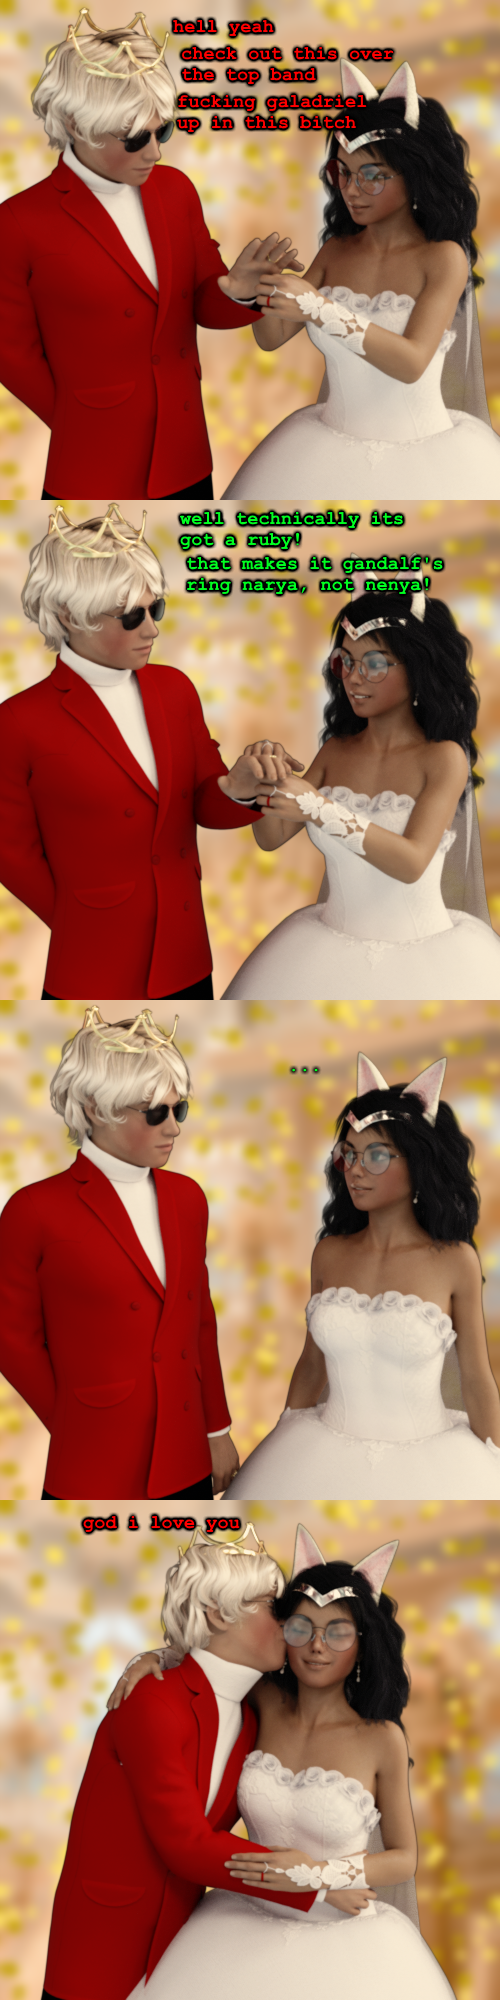 3d breedingduties comic dave_strider dogtier formal jade_harley lord_of_the_rings redrom shipping spacetime text